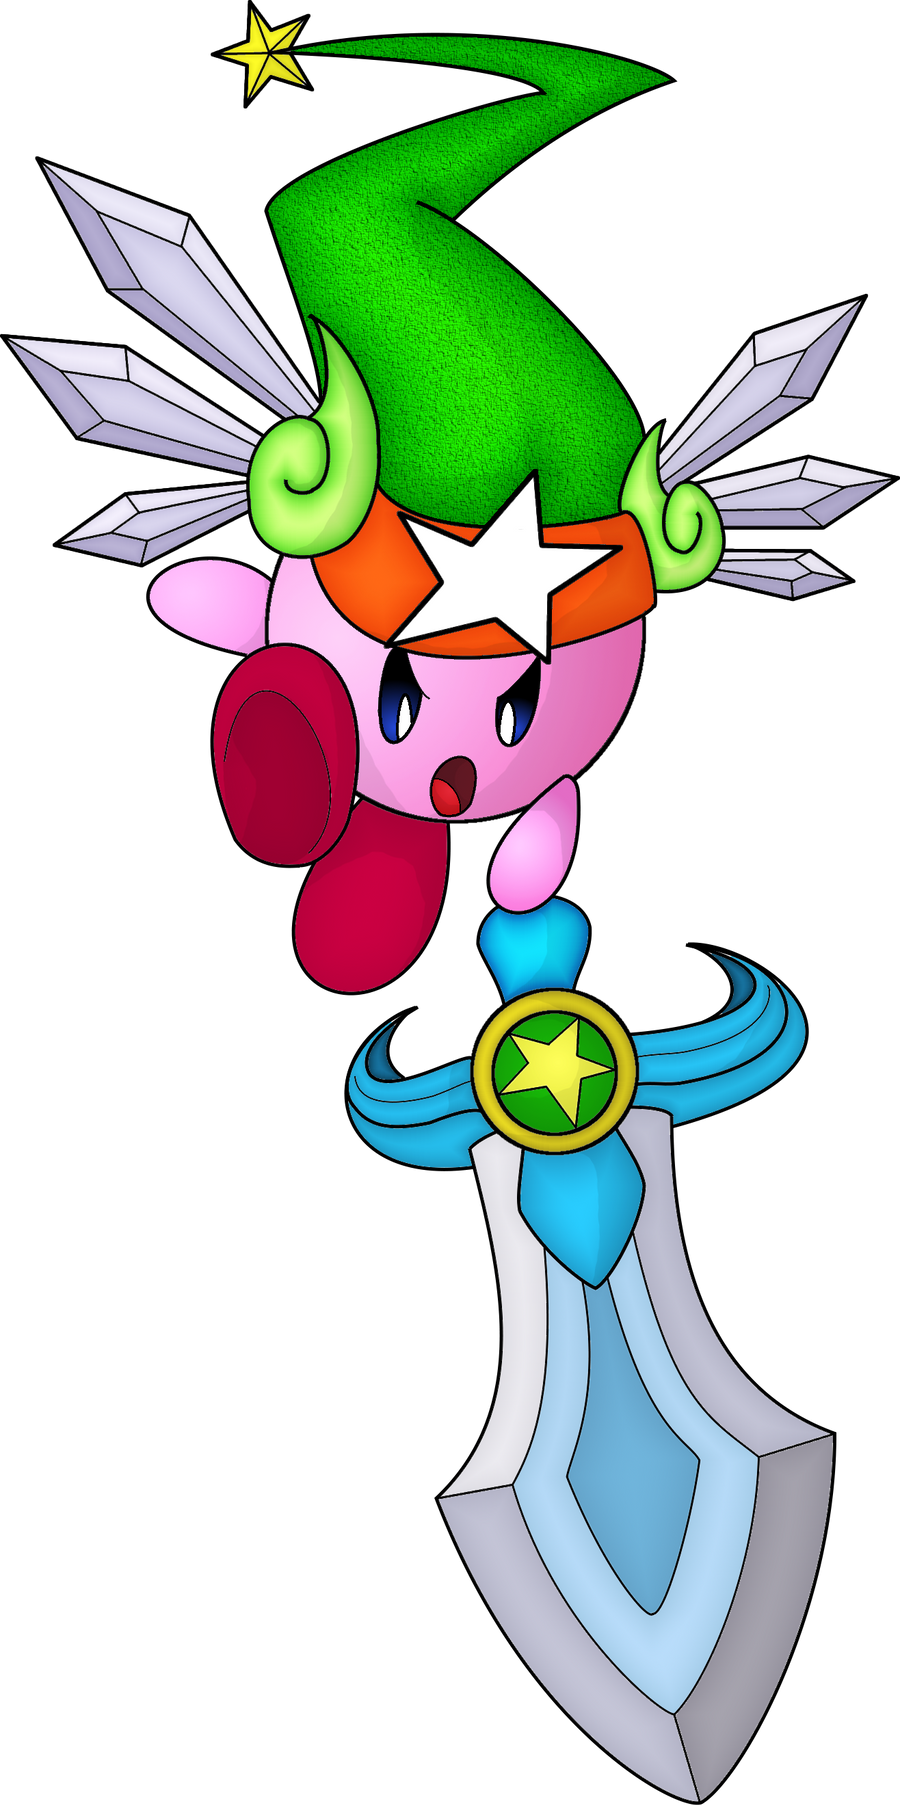 Sword Kirby Drawing Kirby Ultra Sword by